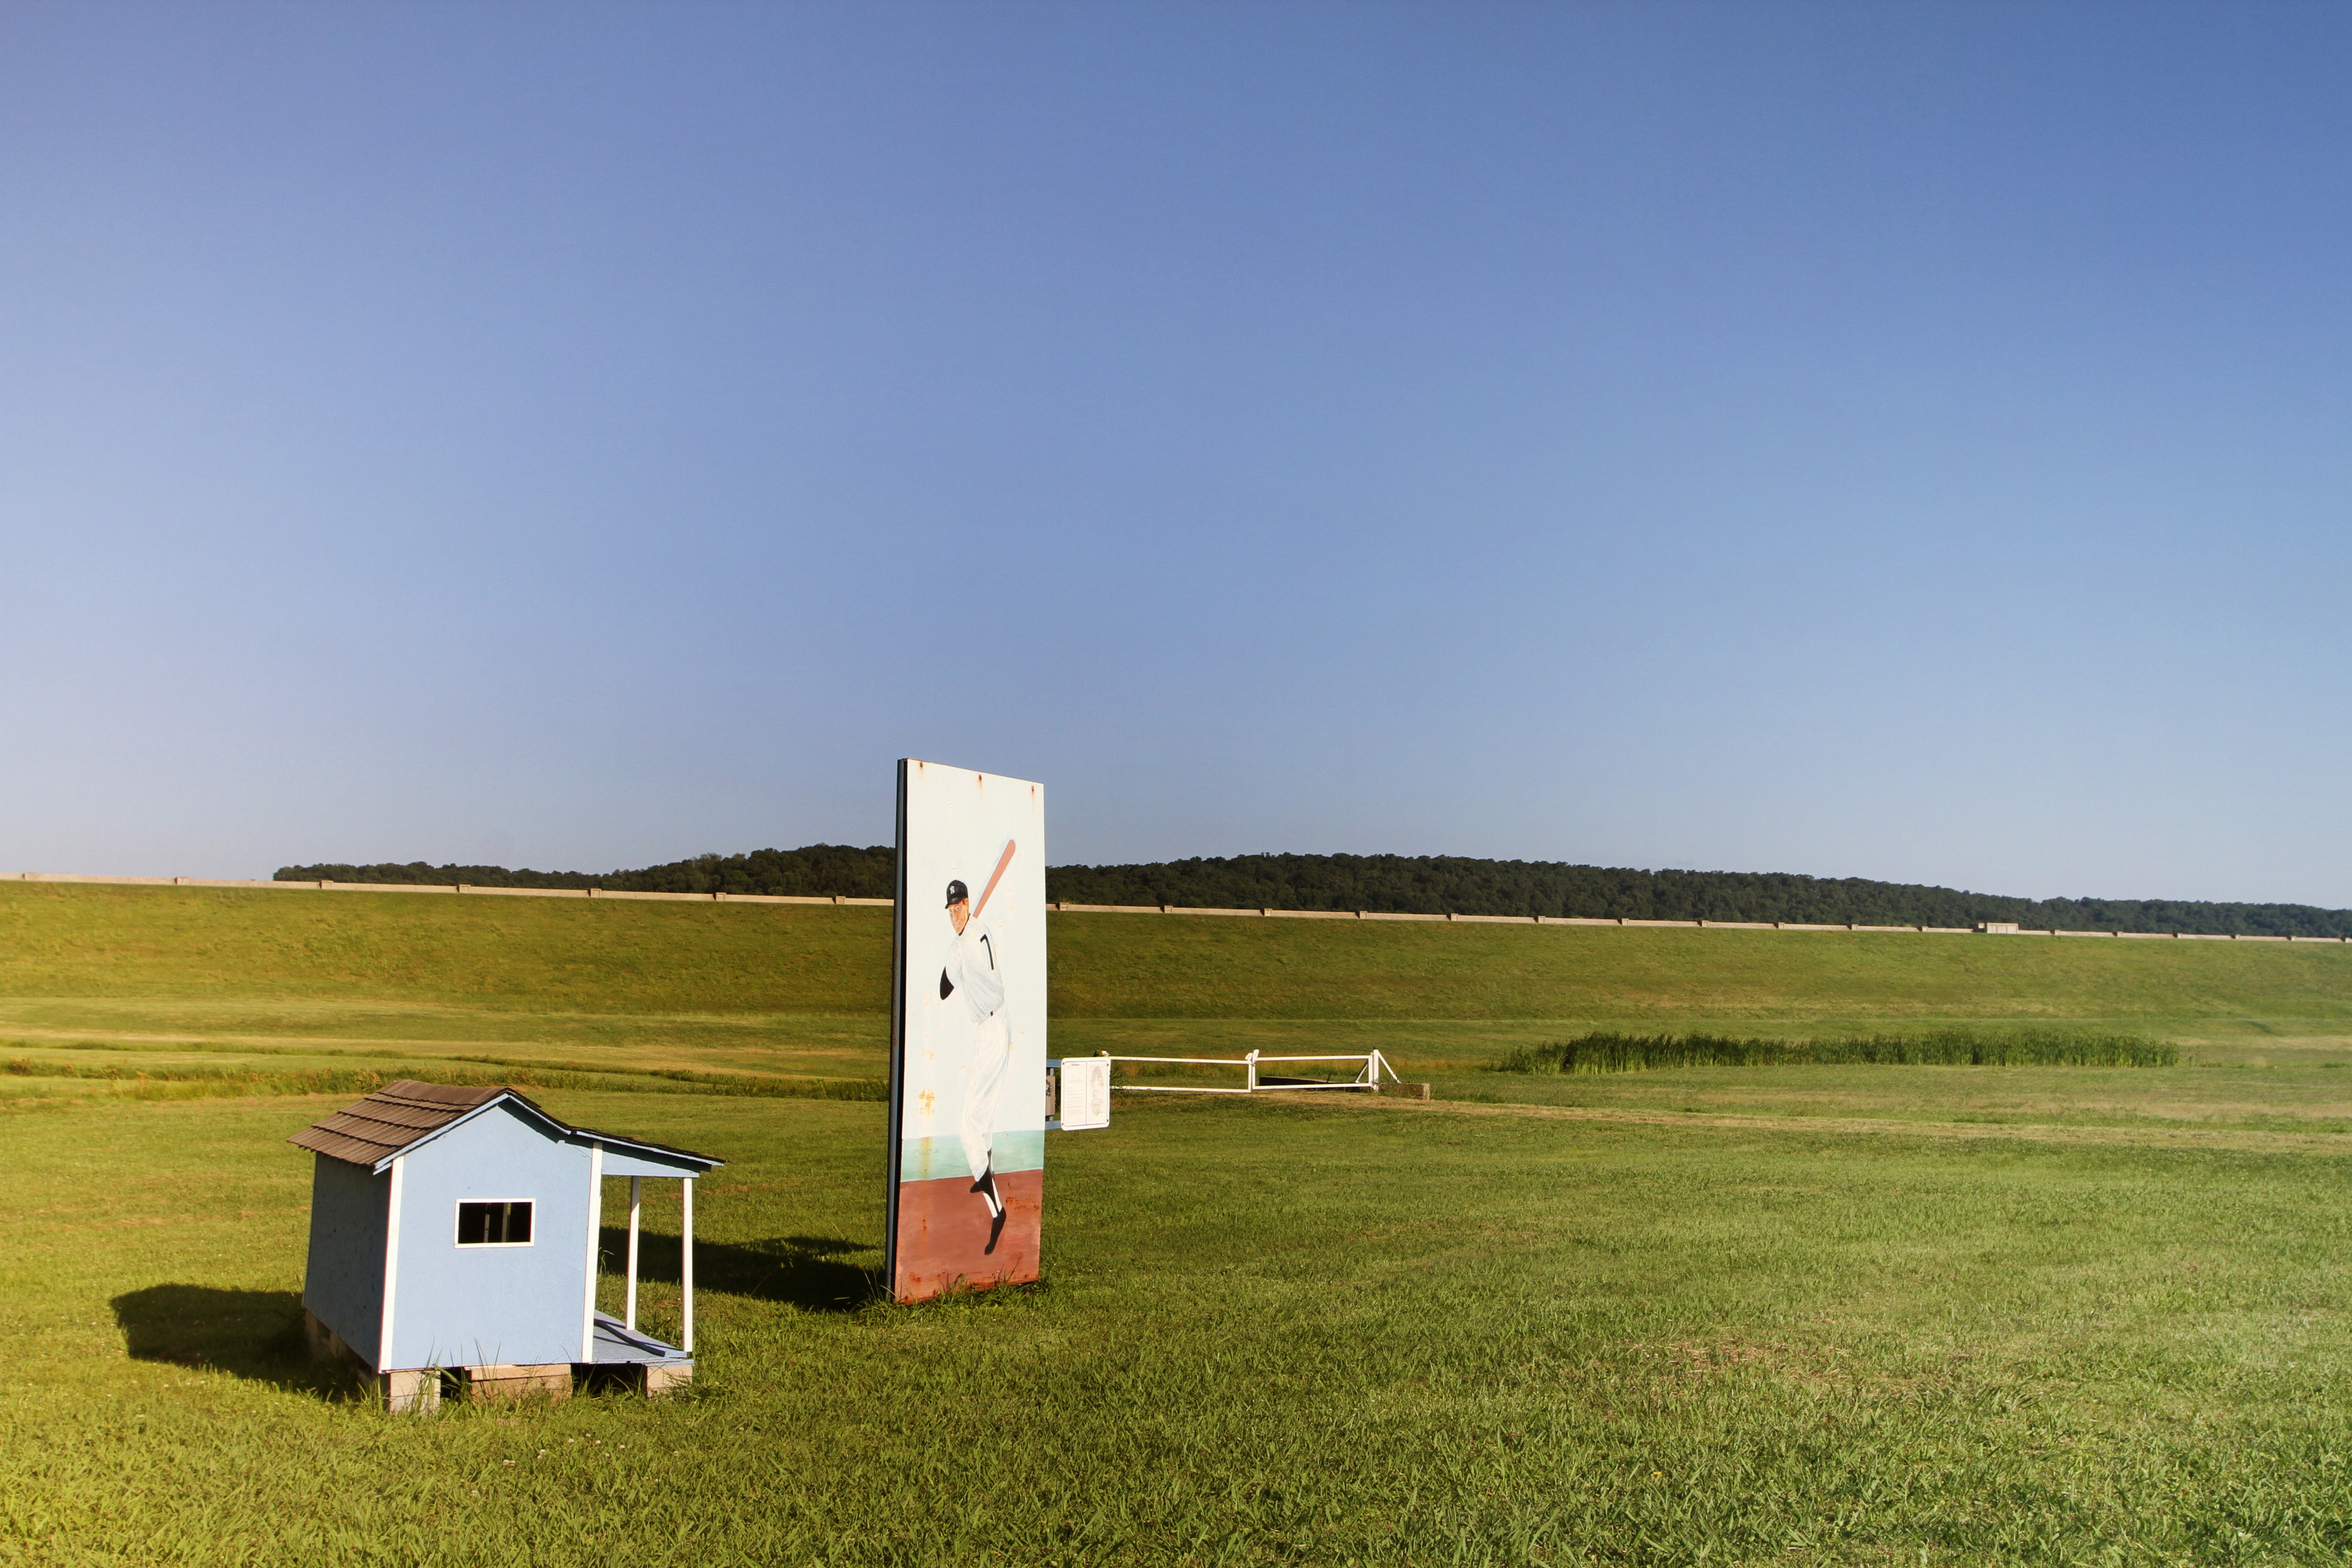 A photograph depicts a large artistic rendering of a baseball player next to a small shed on a prairie underneath a blue sky